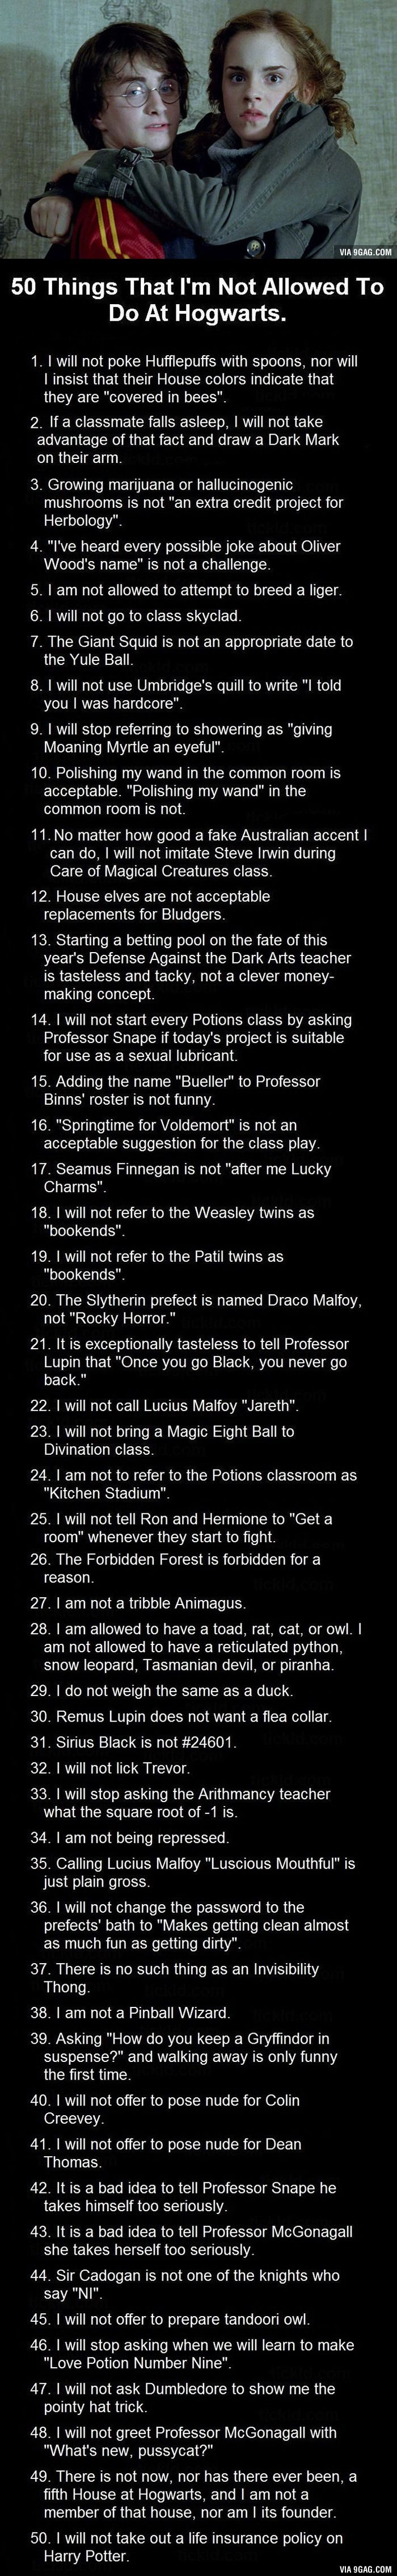 I happen to be a Hufflepuff, and am very offended by the first one.